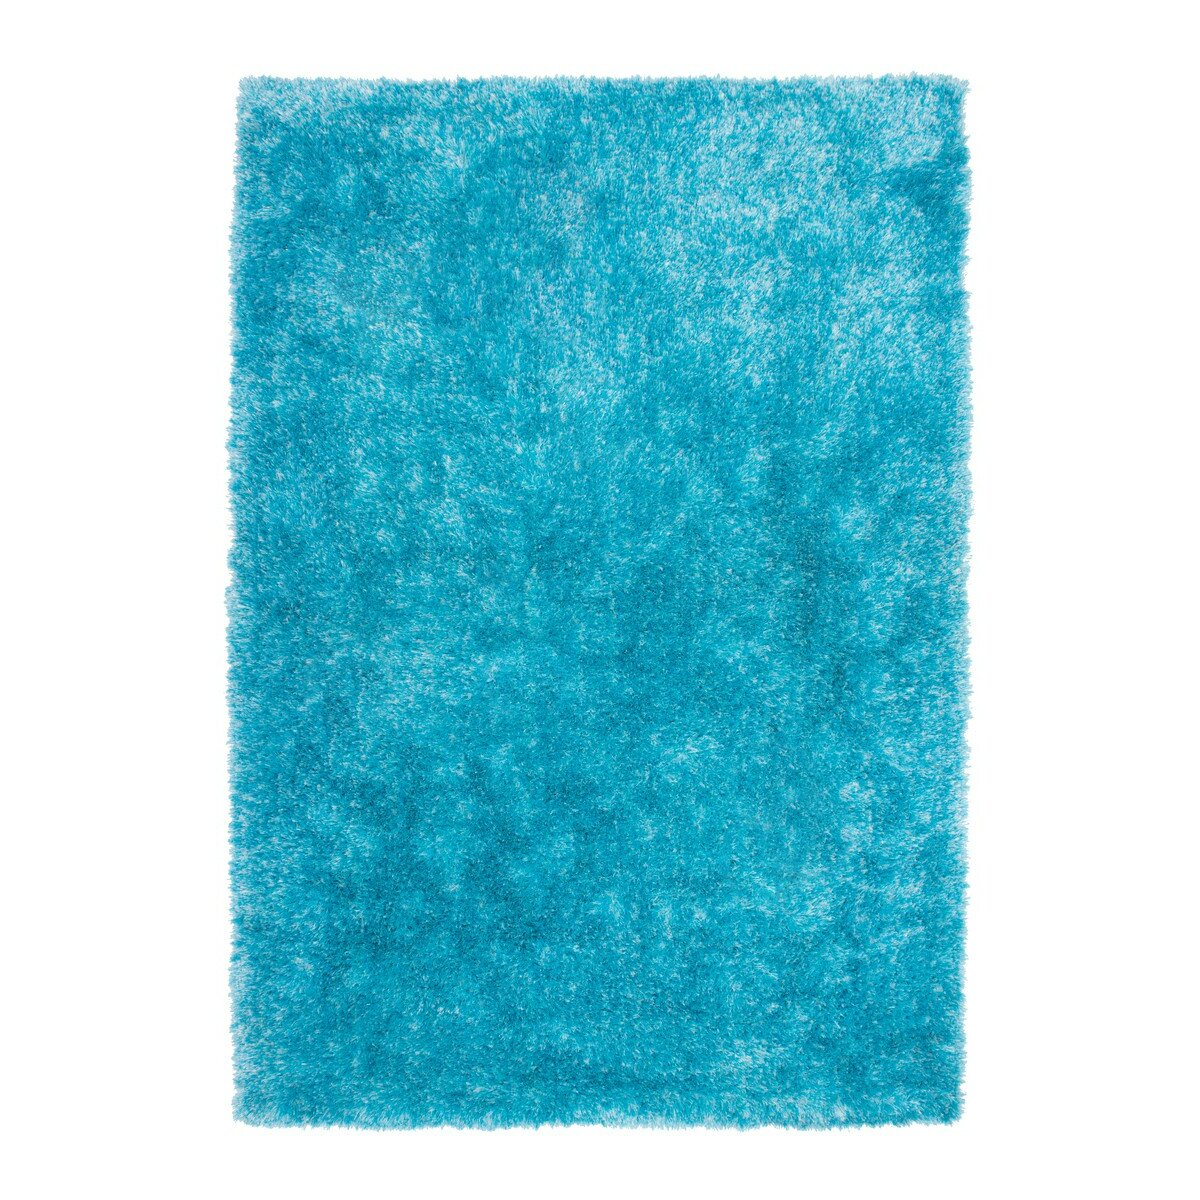 Kayoom diamond handmade cyan area rug reviews wayfair uk for Tapis bleu turquoise